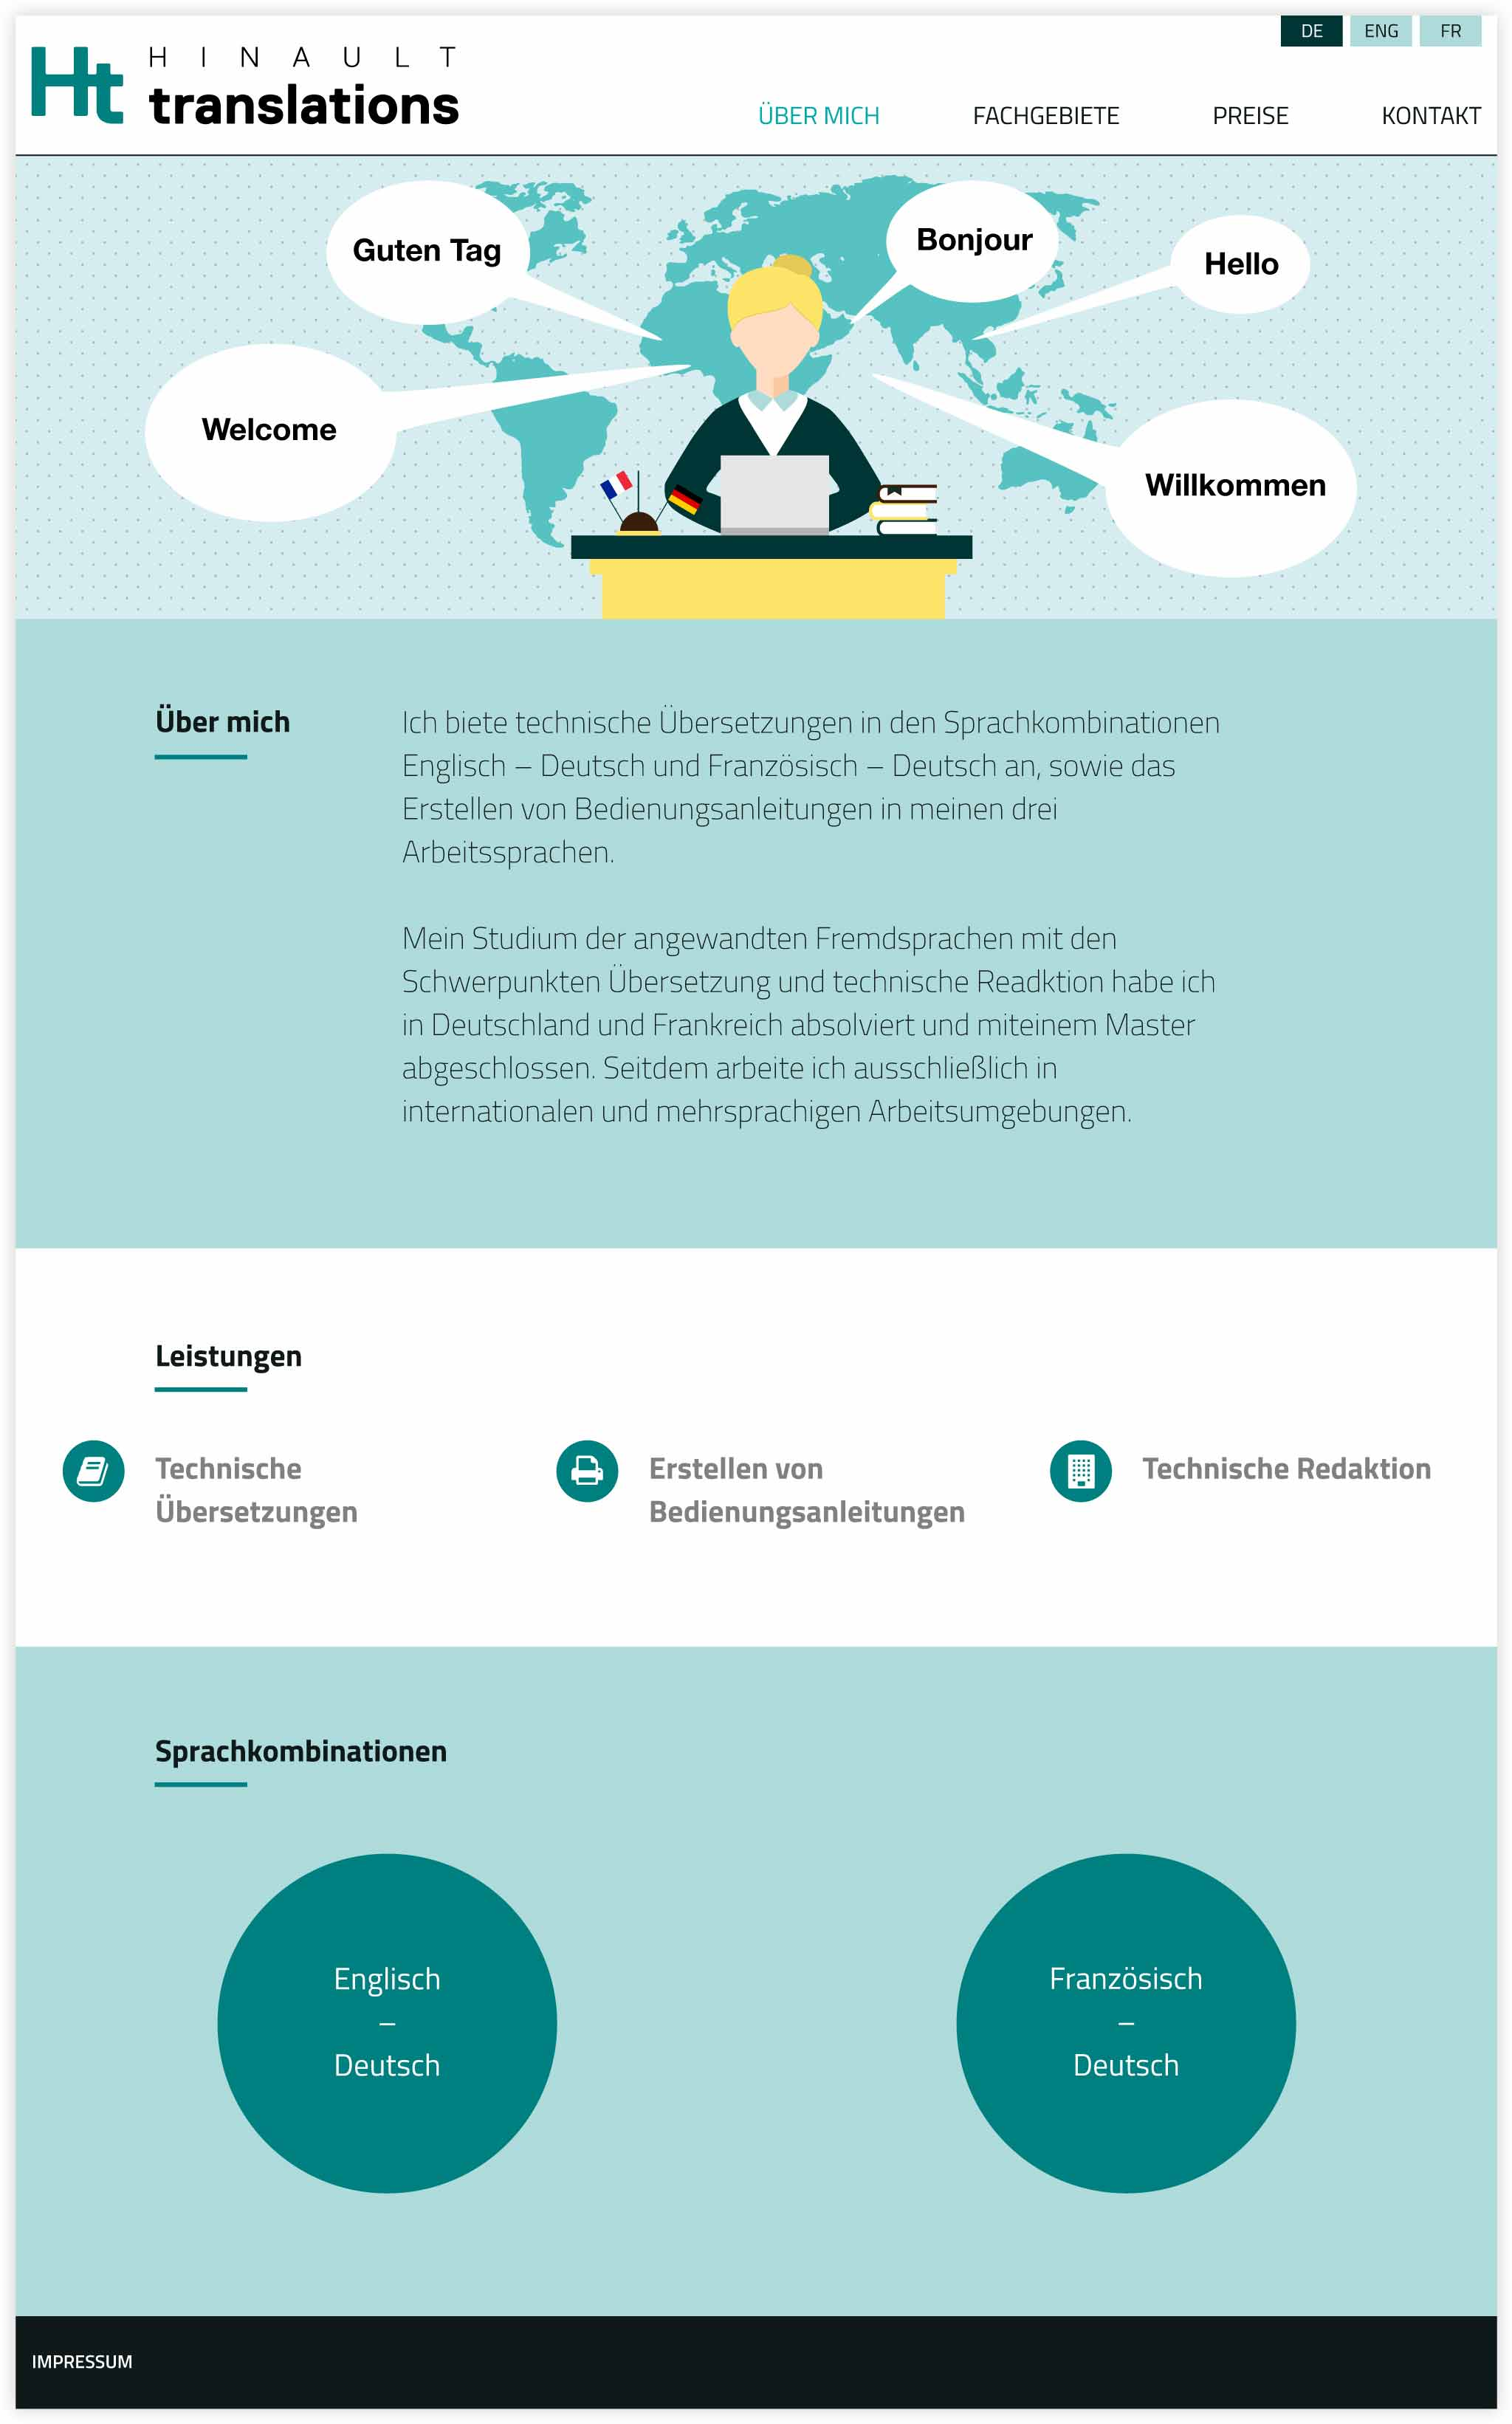 HINAULT translations Webdesign GesaSiebert Kommunikationsdesign Startseite